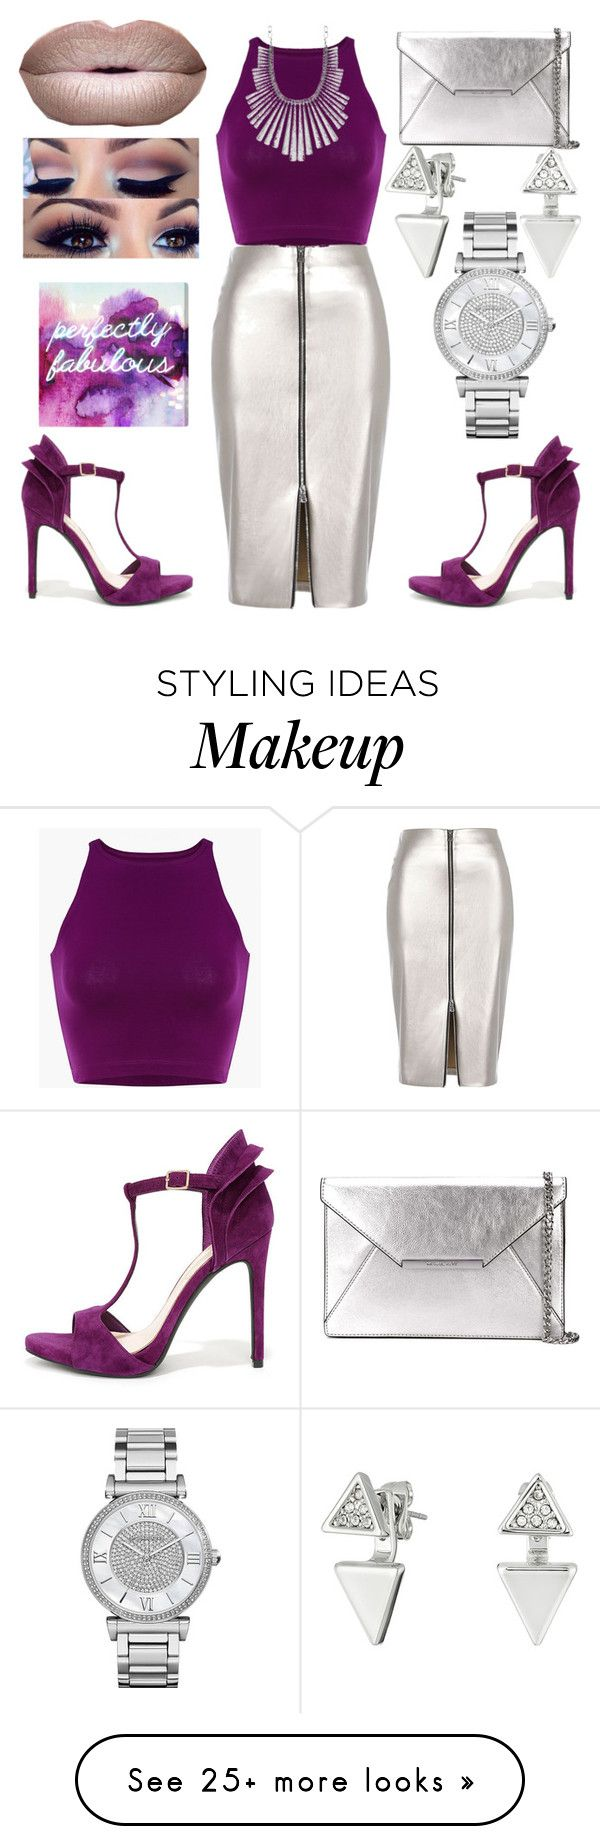 """""""Perfectly fab."""" by veronica-maneaa on Polyvore featuring River Island, Jessica Simpson, MICHAEL Michael Kors, Lucky Brand, Michael Kors, Rebecca Minkoff, Oliver Gal Artist Co., purple, Silver and fabulous"""